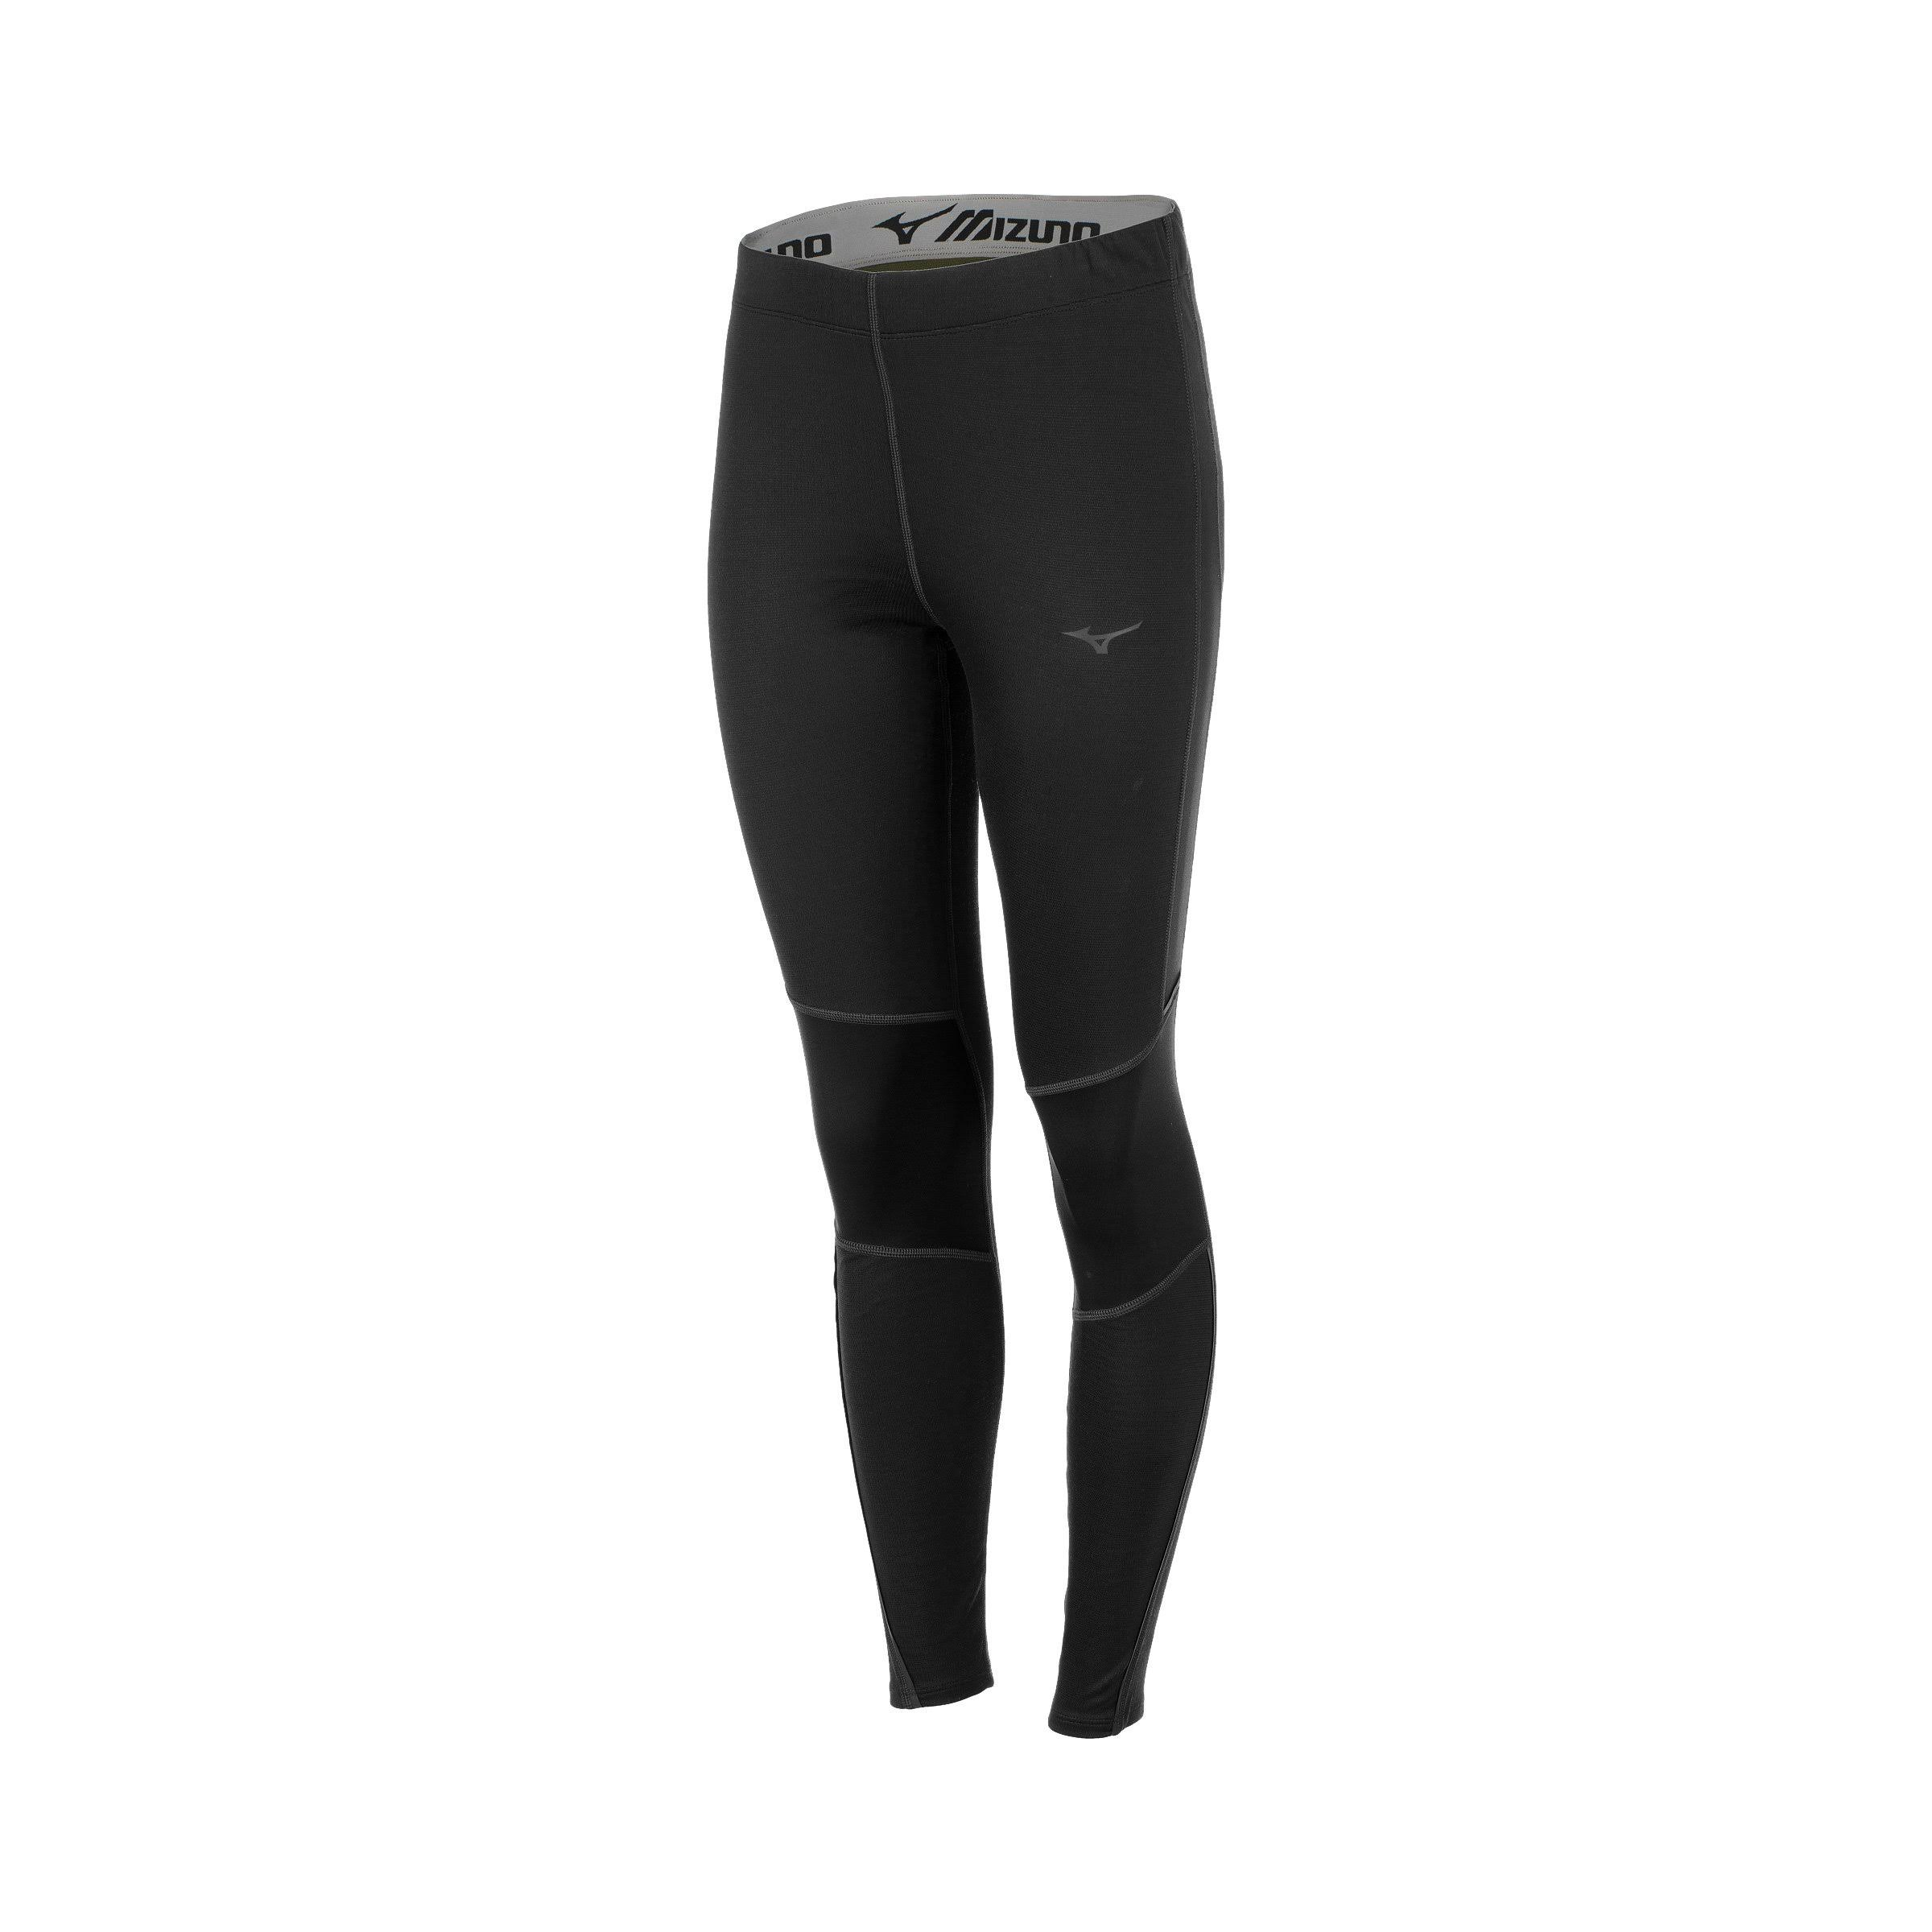 Mizuno - Women's Breath Thermo Tights, Black, Size Small